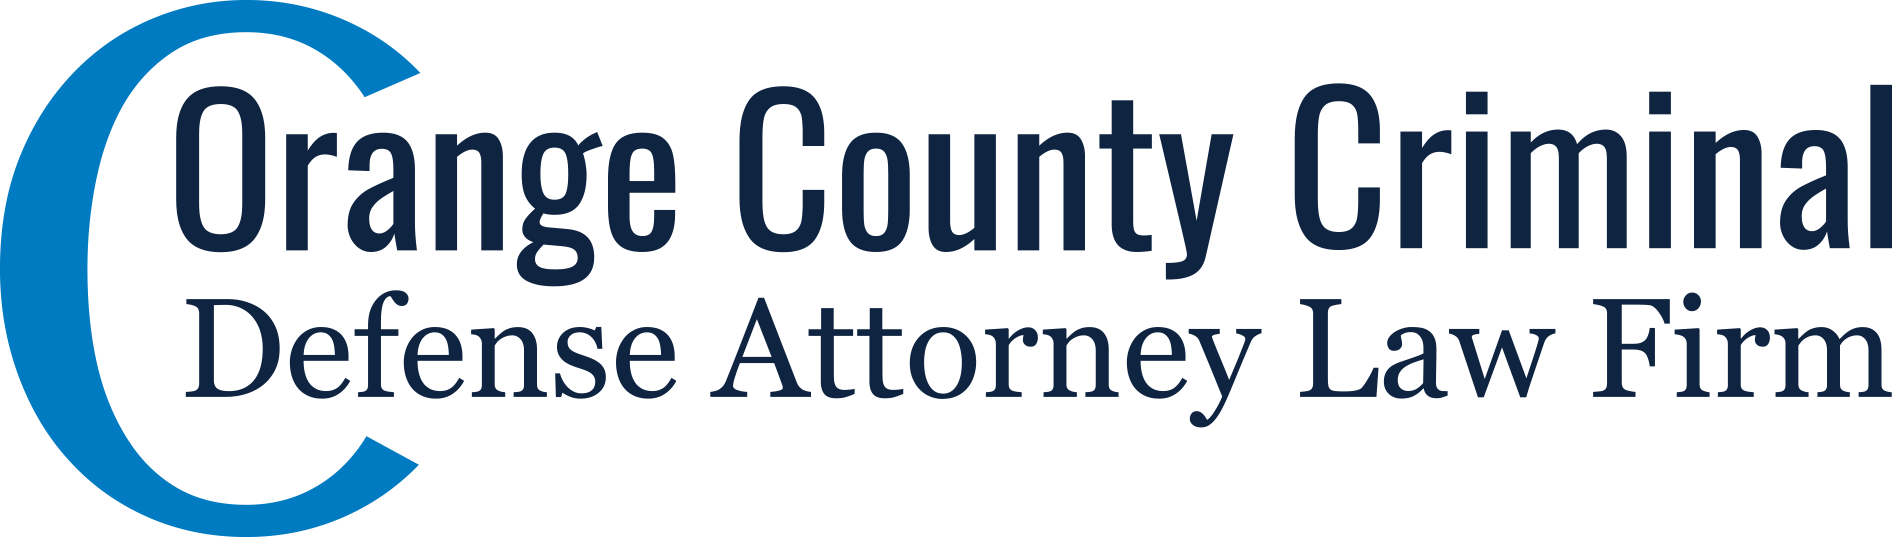 Orange County Criminal Defense Attorney Law Firm